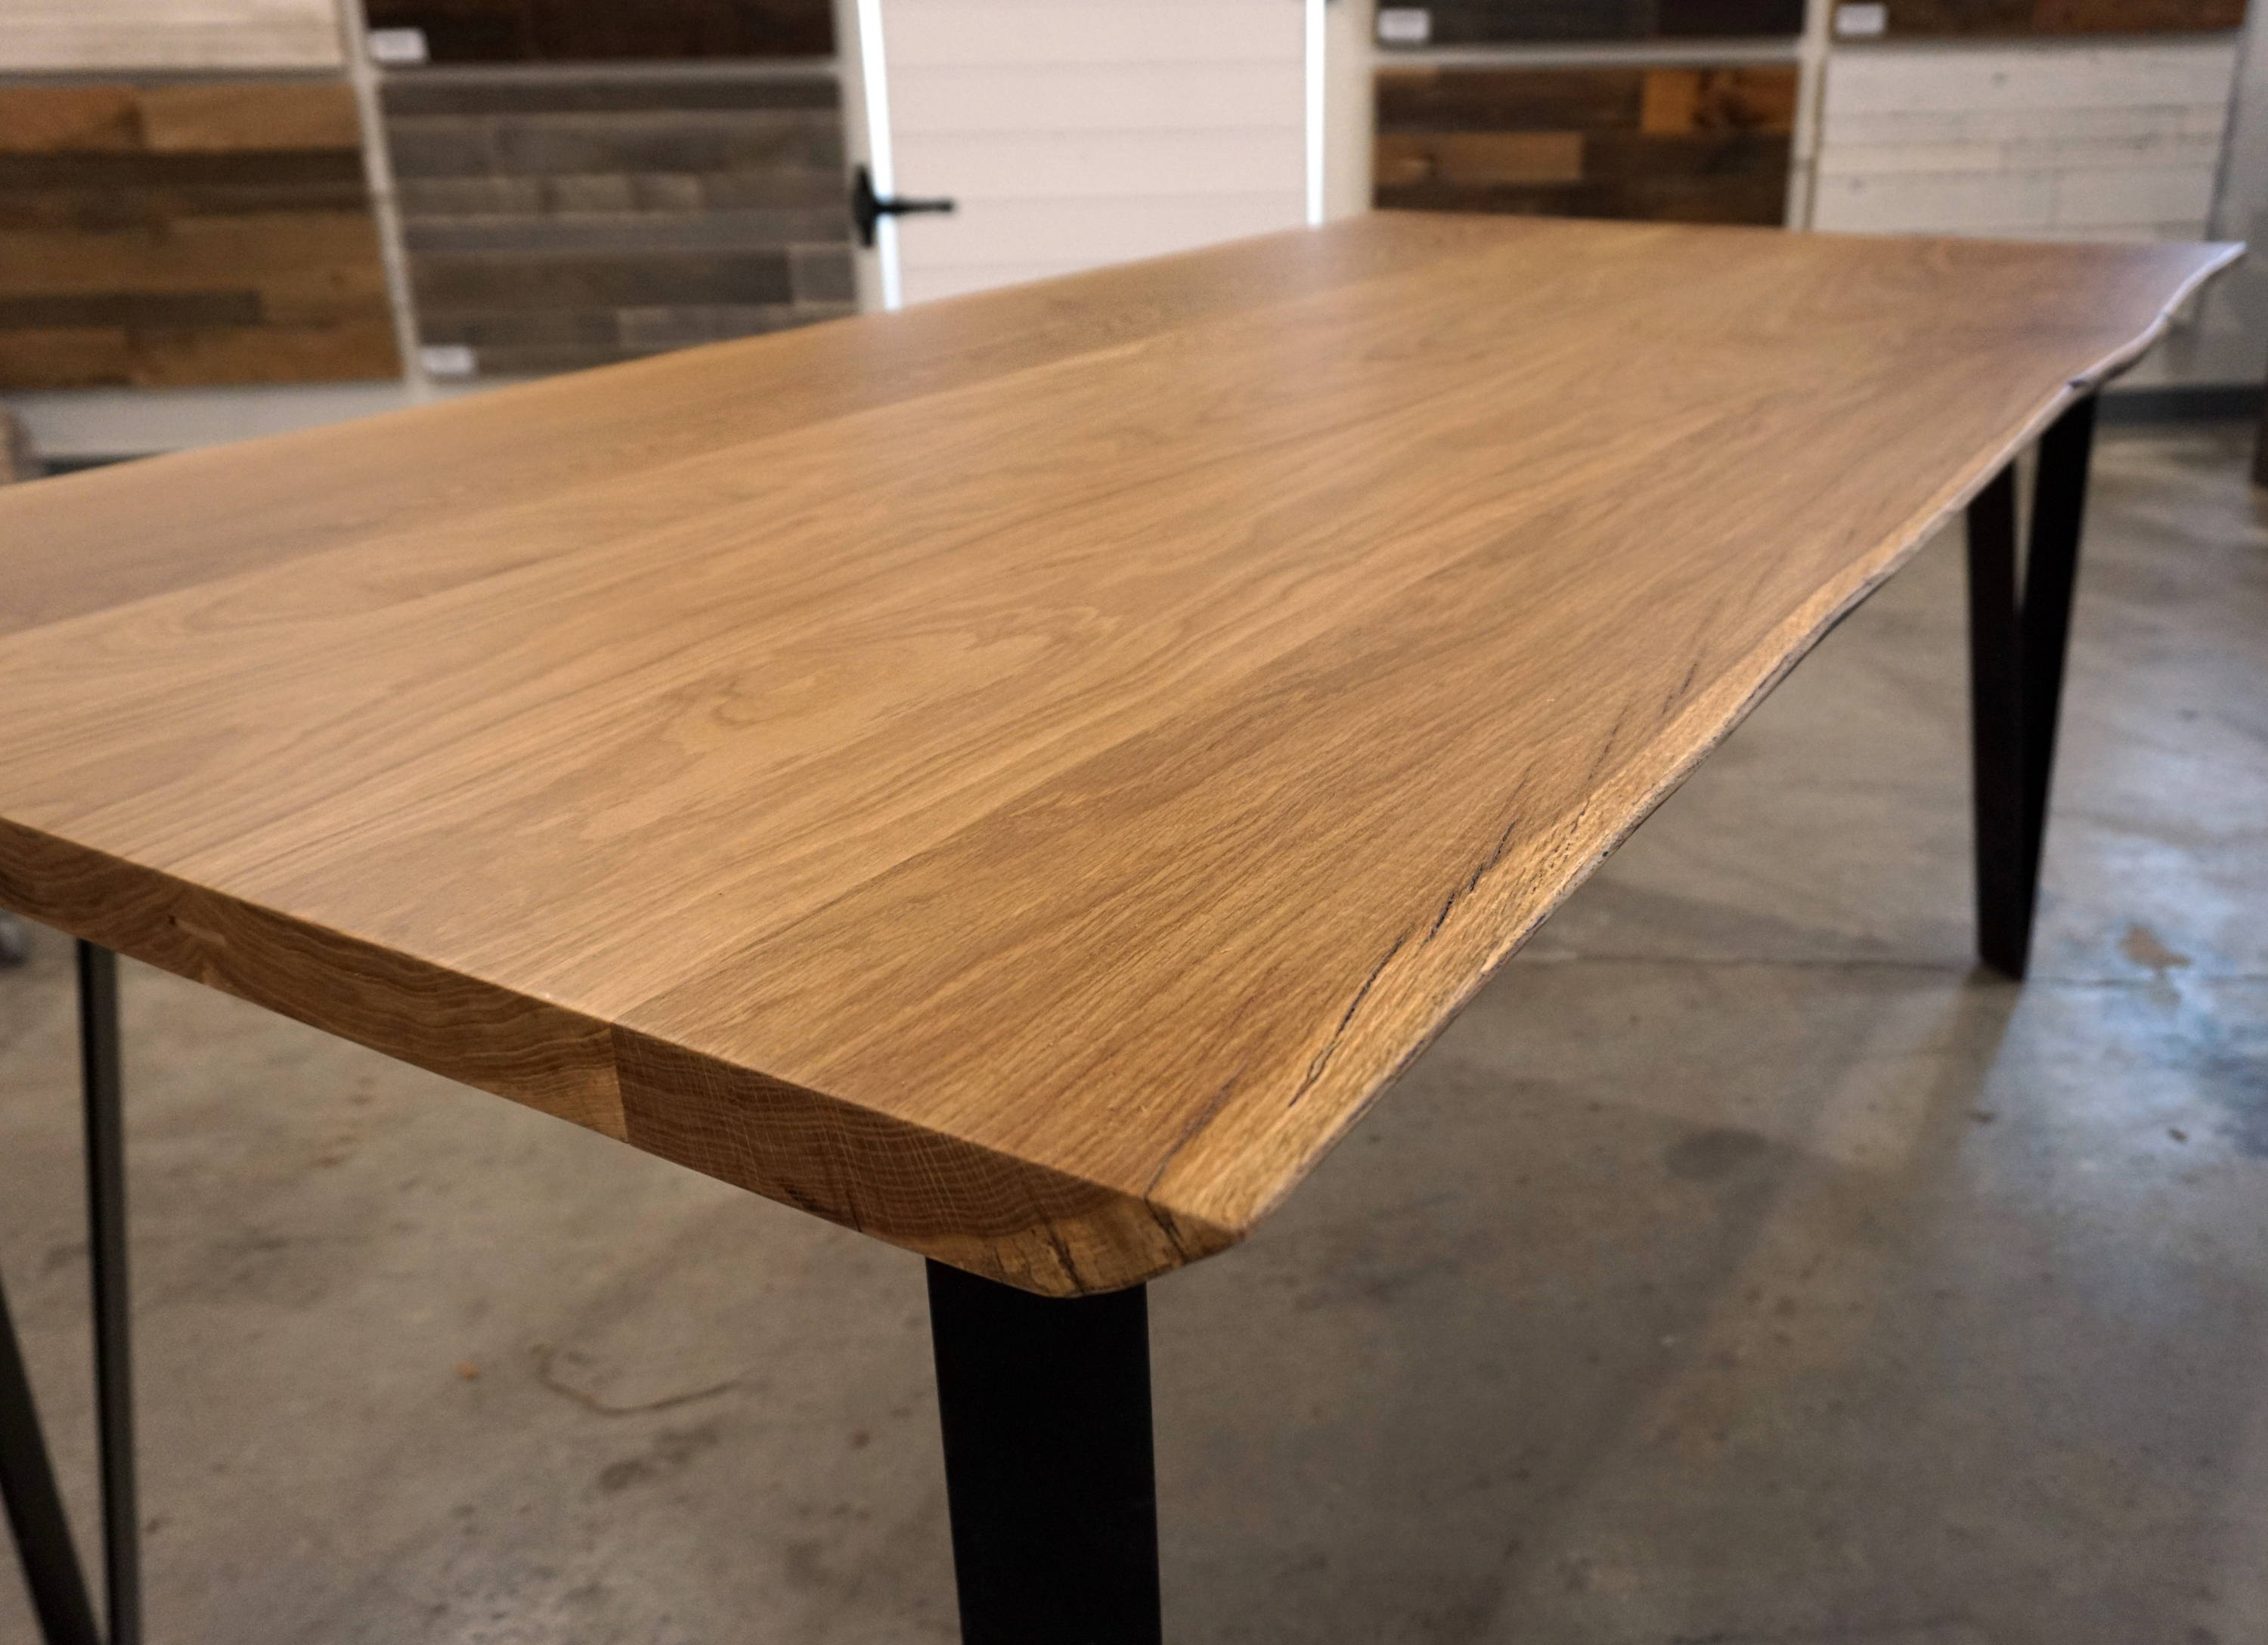 Live-Edge Table Top